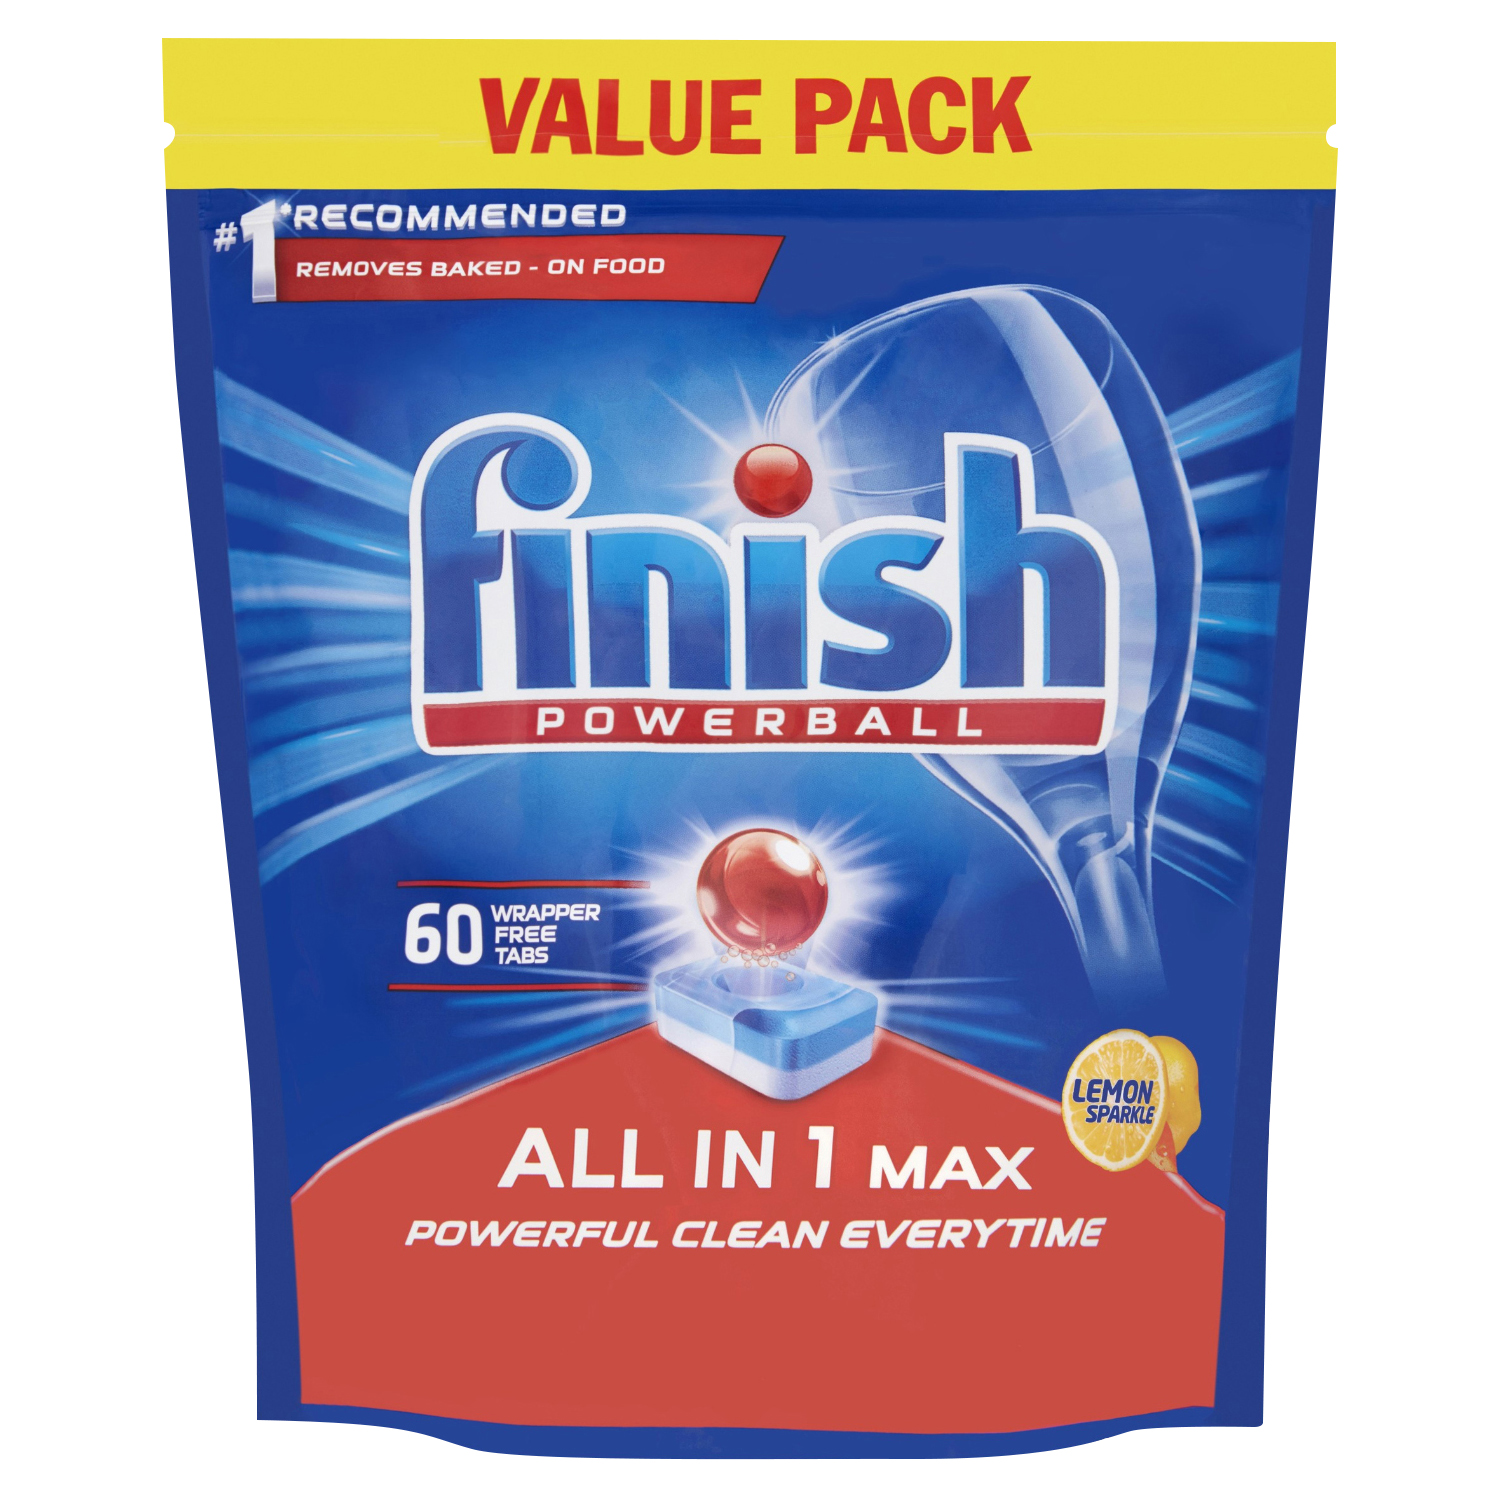 Dishwashing products Finish Dishwasher Powerball Tablets All-in-1 Ref Lemon RB797723 Pack 60